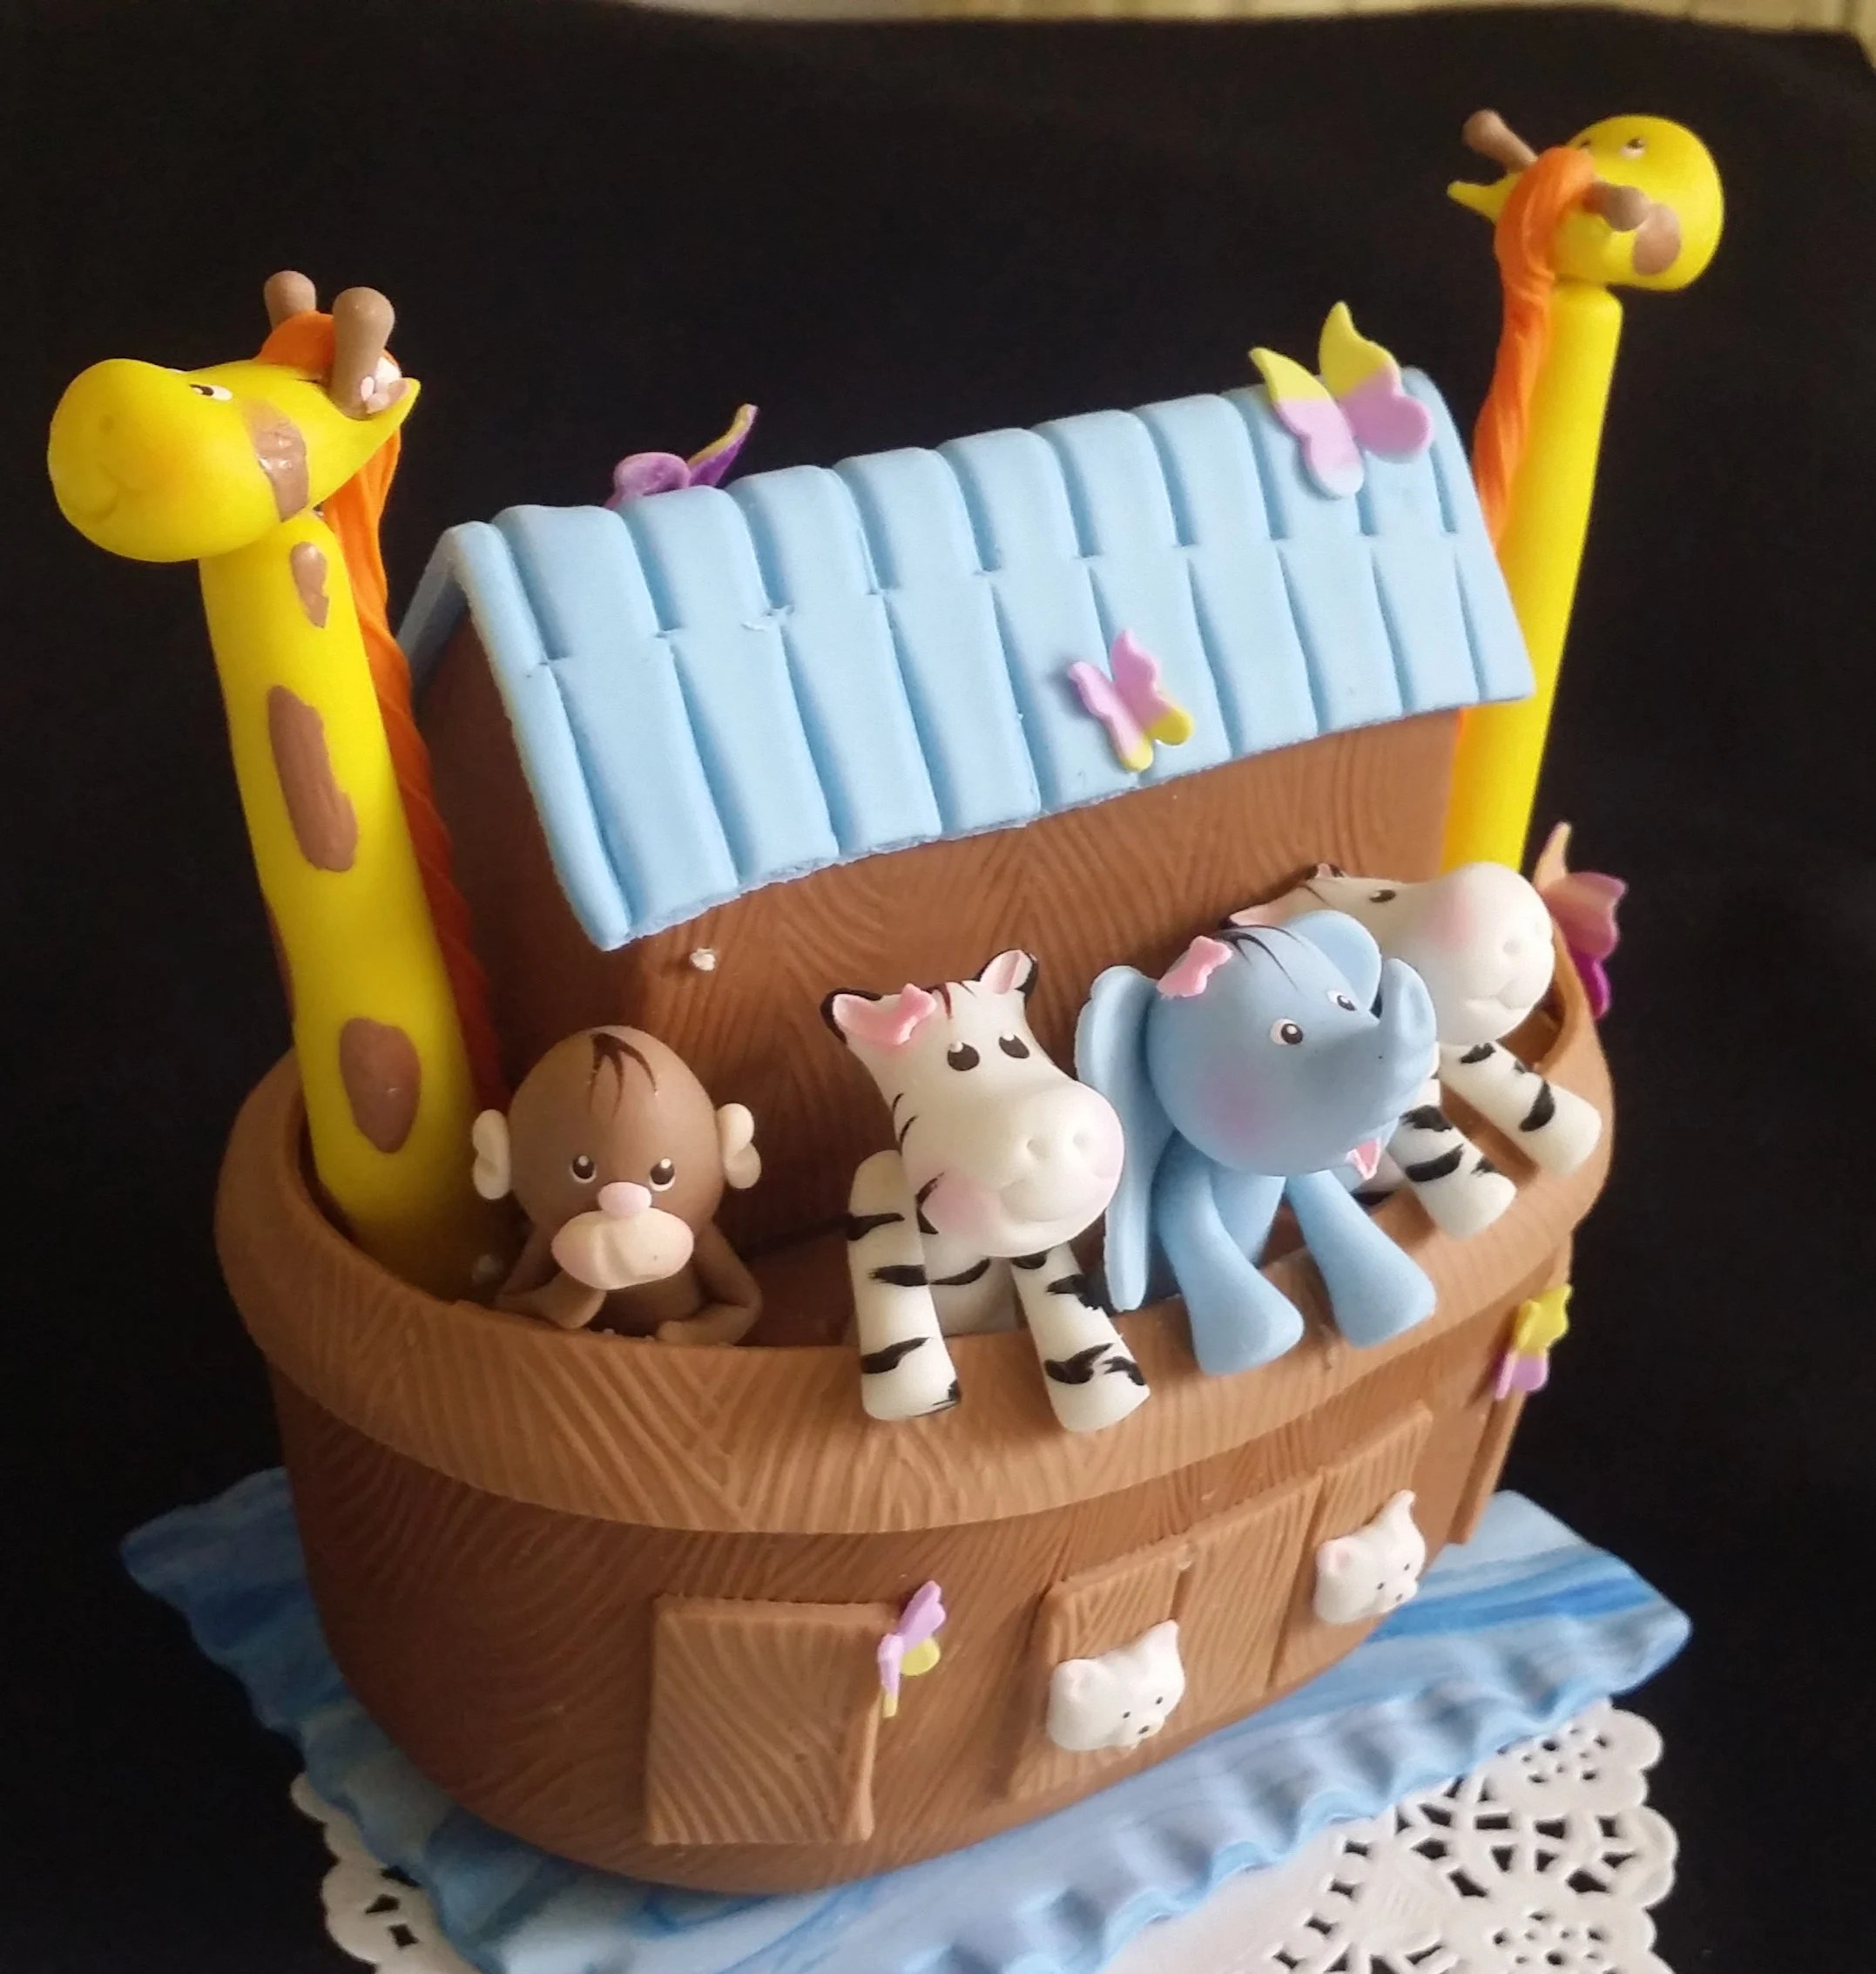 Ark Kuchen Noah S Ark Baby Shower Noahs Ark Cake Noahs Ark Decoration Noah S Ark Birthday Cake Decorations Noah S Ark Favors Animals Cake Topper